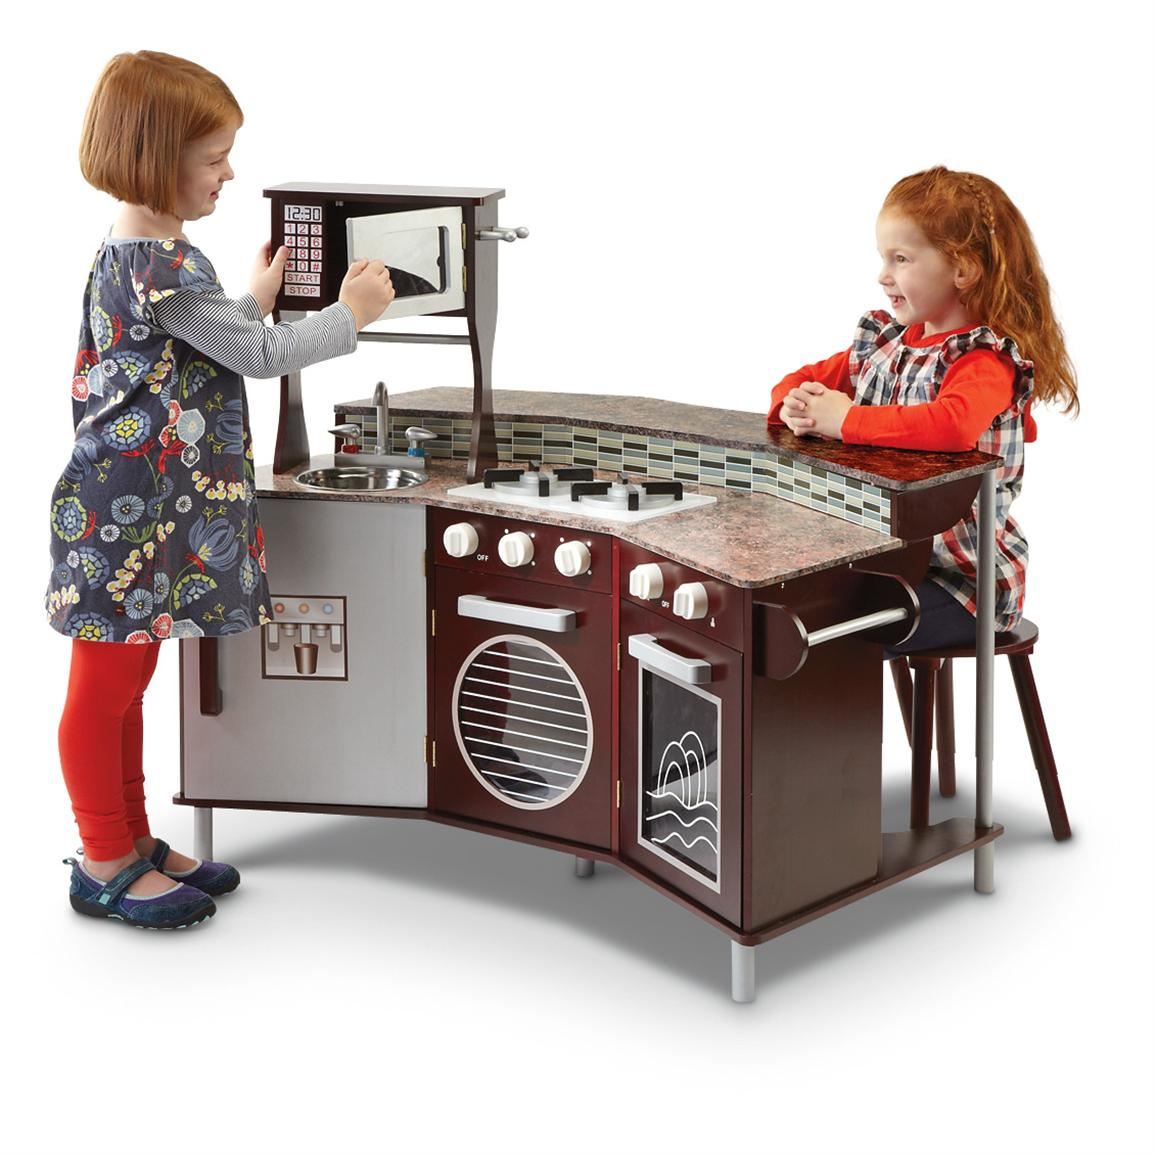 Teamson 174 My Little Chef Deluxe Kitchen Play Set 311117